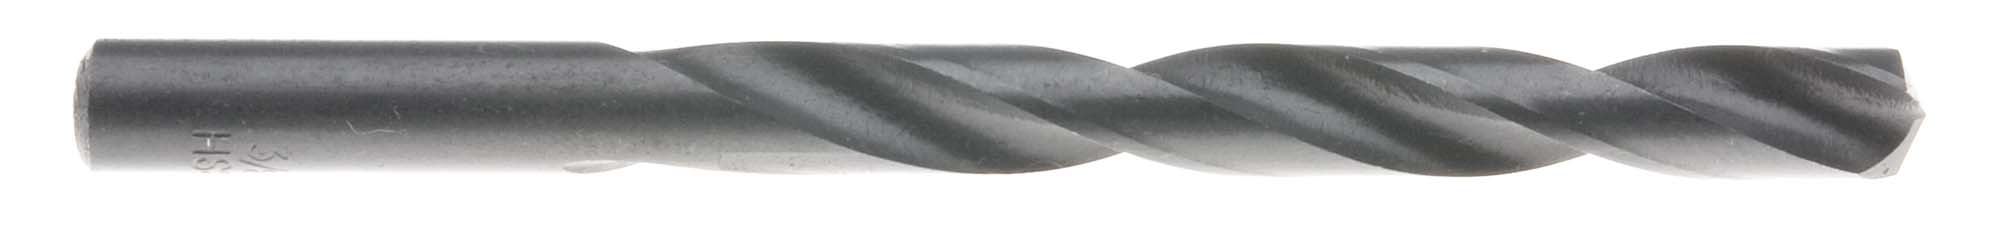 "#5 (.2055"") Heavy Duty Split Point Jobber Drill Bit, High Speed Steel"